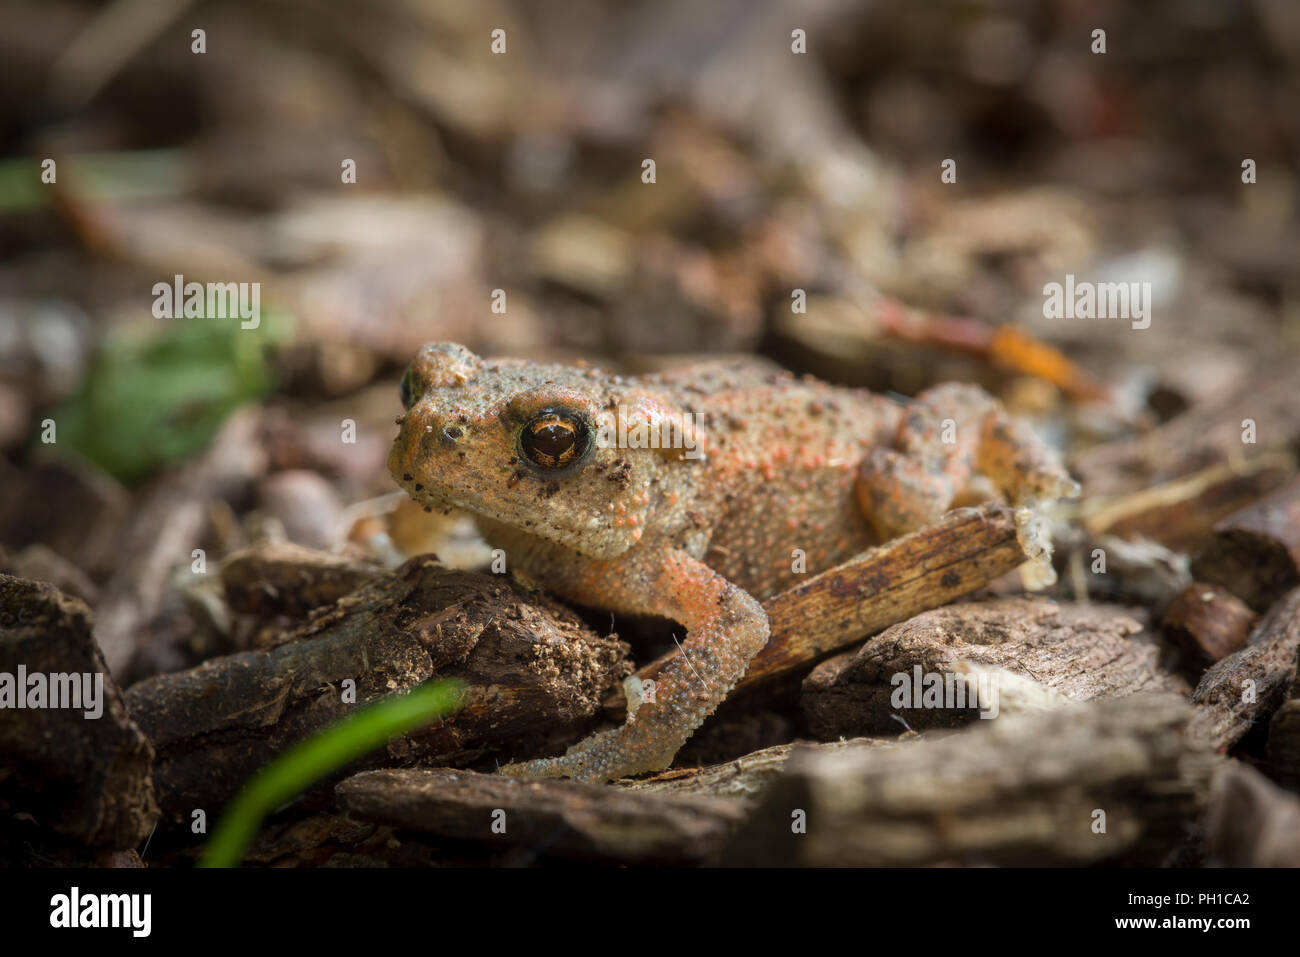 Juvenile Common Toad (Bufo bufo) on woodland floor at Shapwick Heath, Somerset, England. - Stock Image